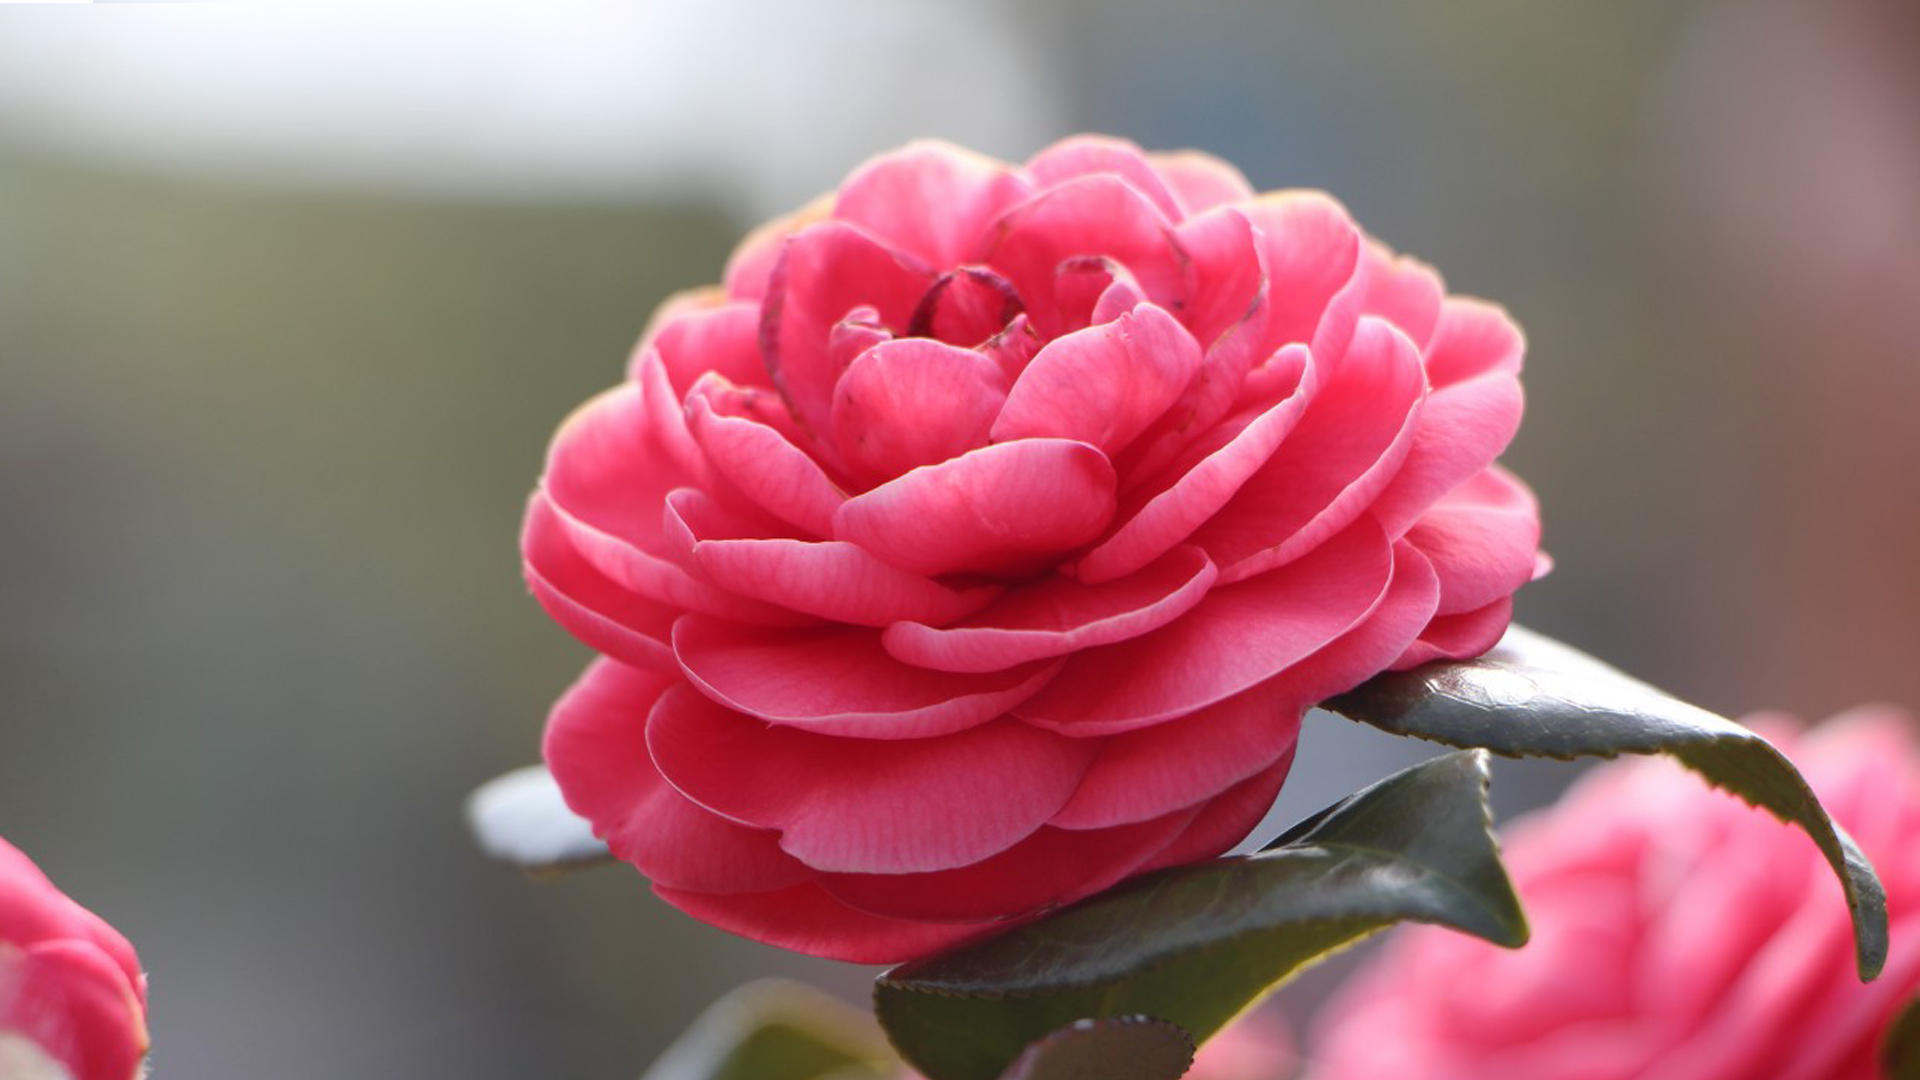 High Resolution Wallpaper Fall Top 10 Flowers That Look Like Roses 02 Camellia Hd